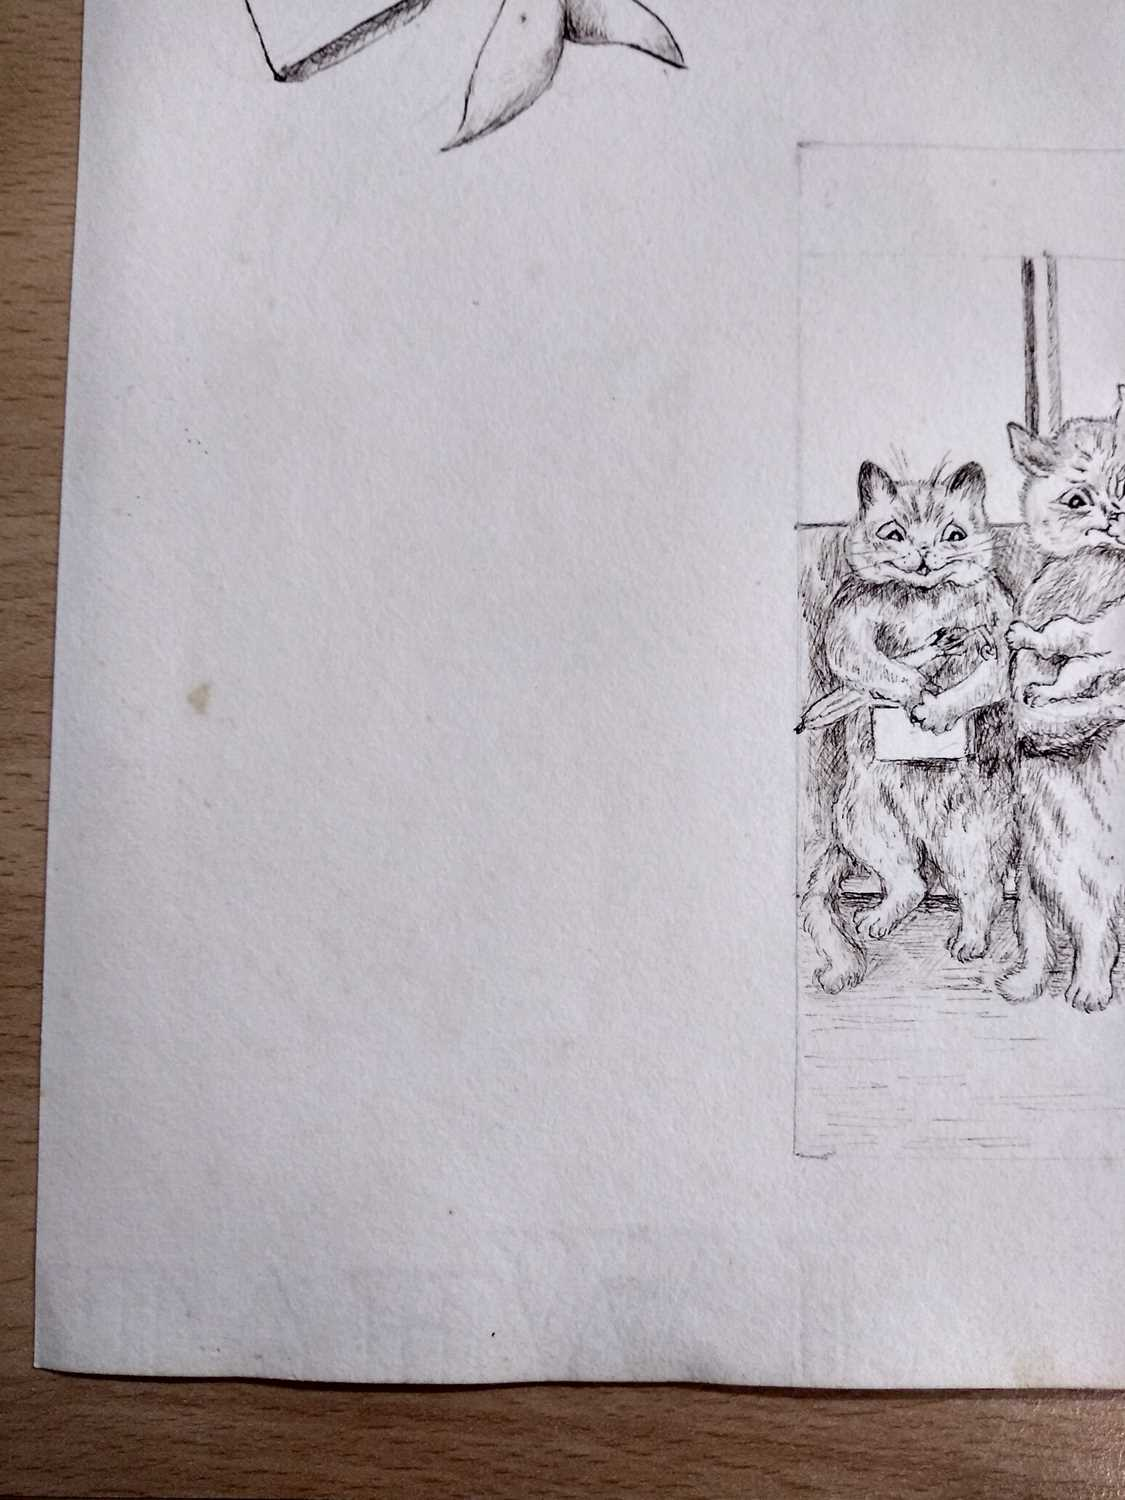 Attributed to Louis Wain (1860-1939) - Image 6 of 8